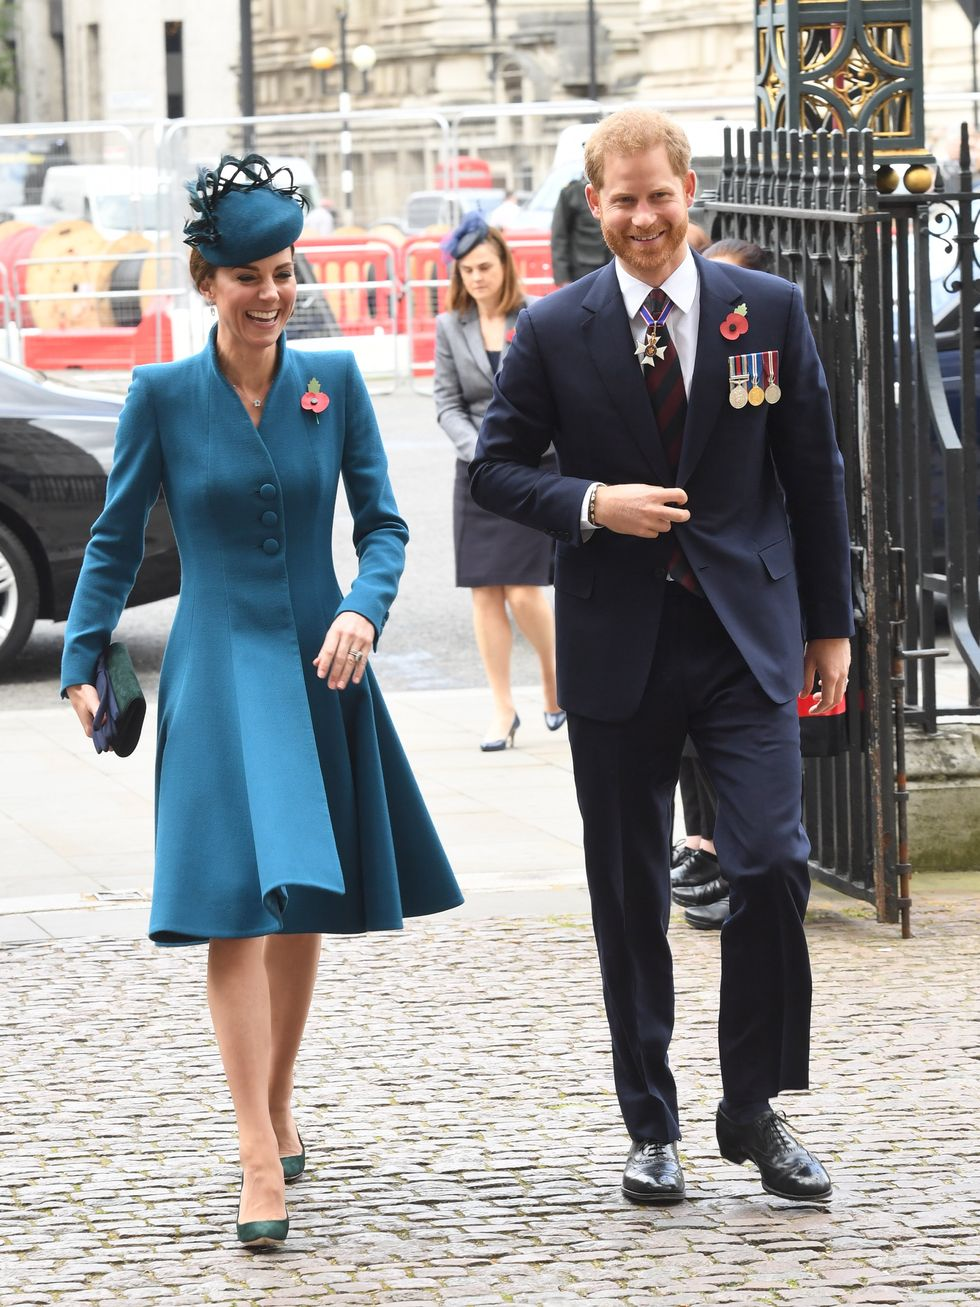 The Duchess of Cambridge is taking over two of Prince Harry's old roles